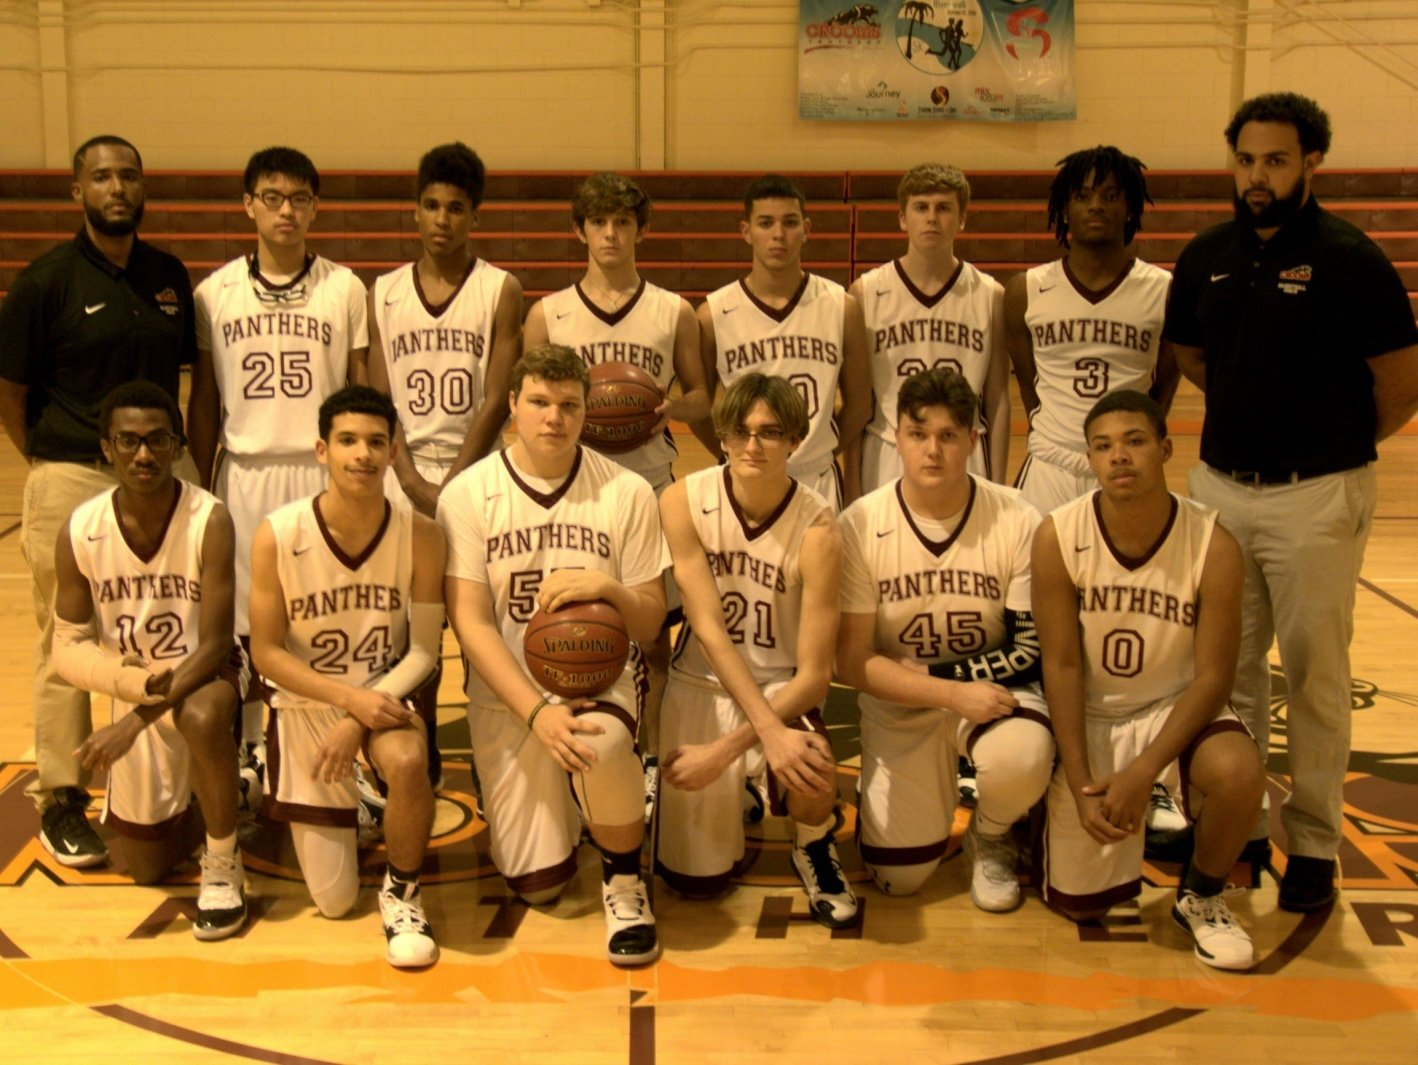 Crooms Academy Panthers - Team Photo